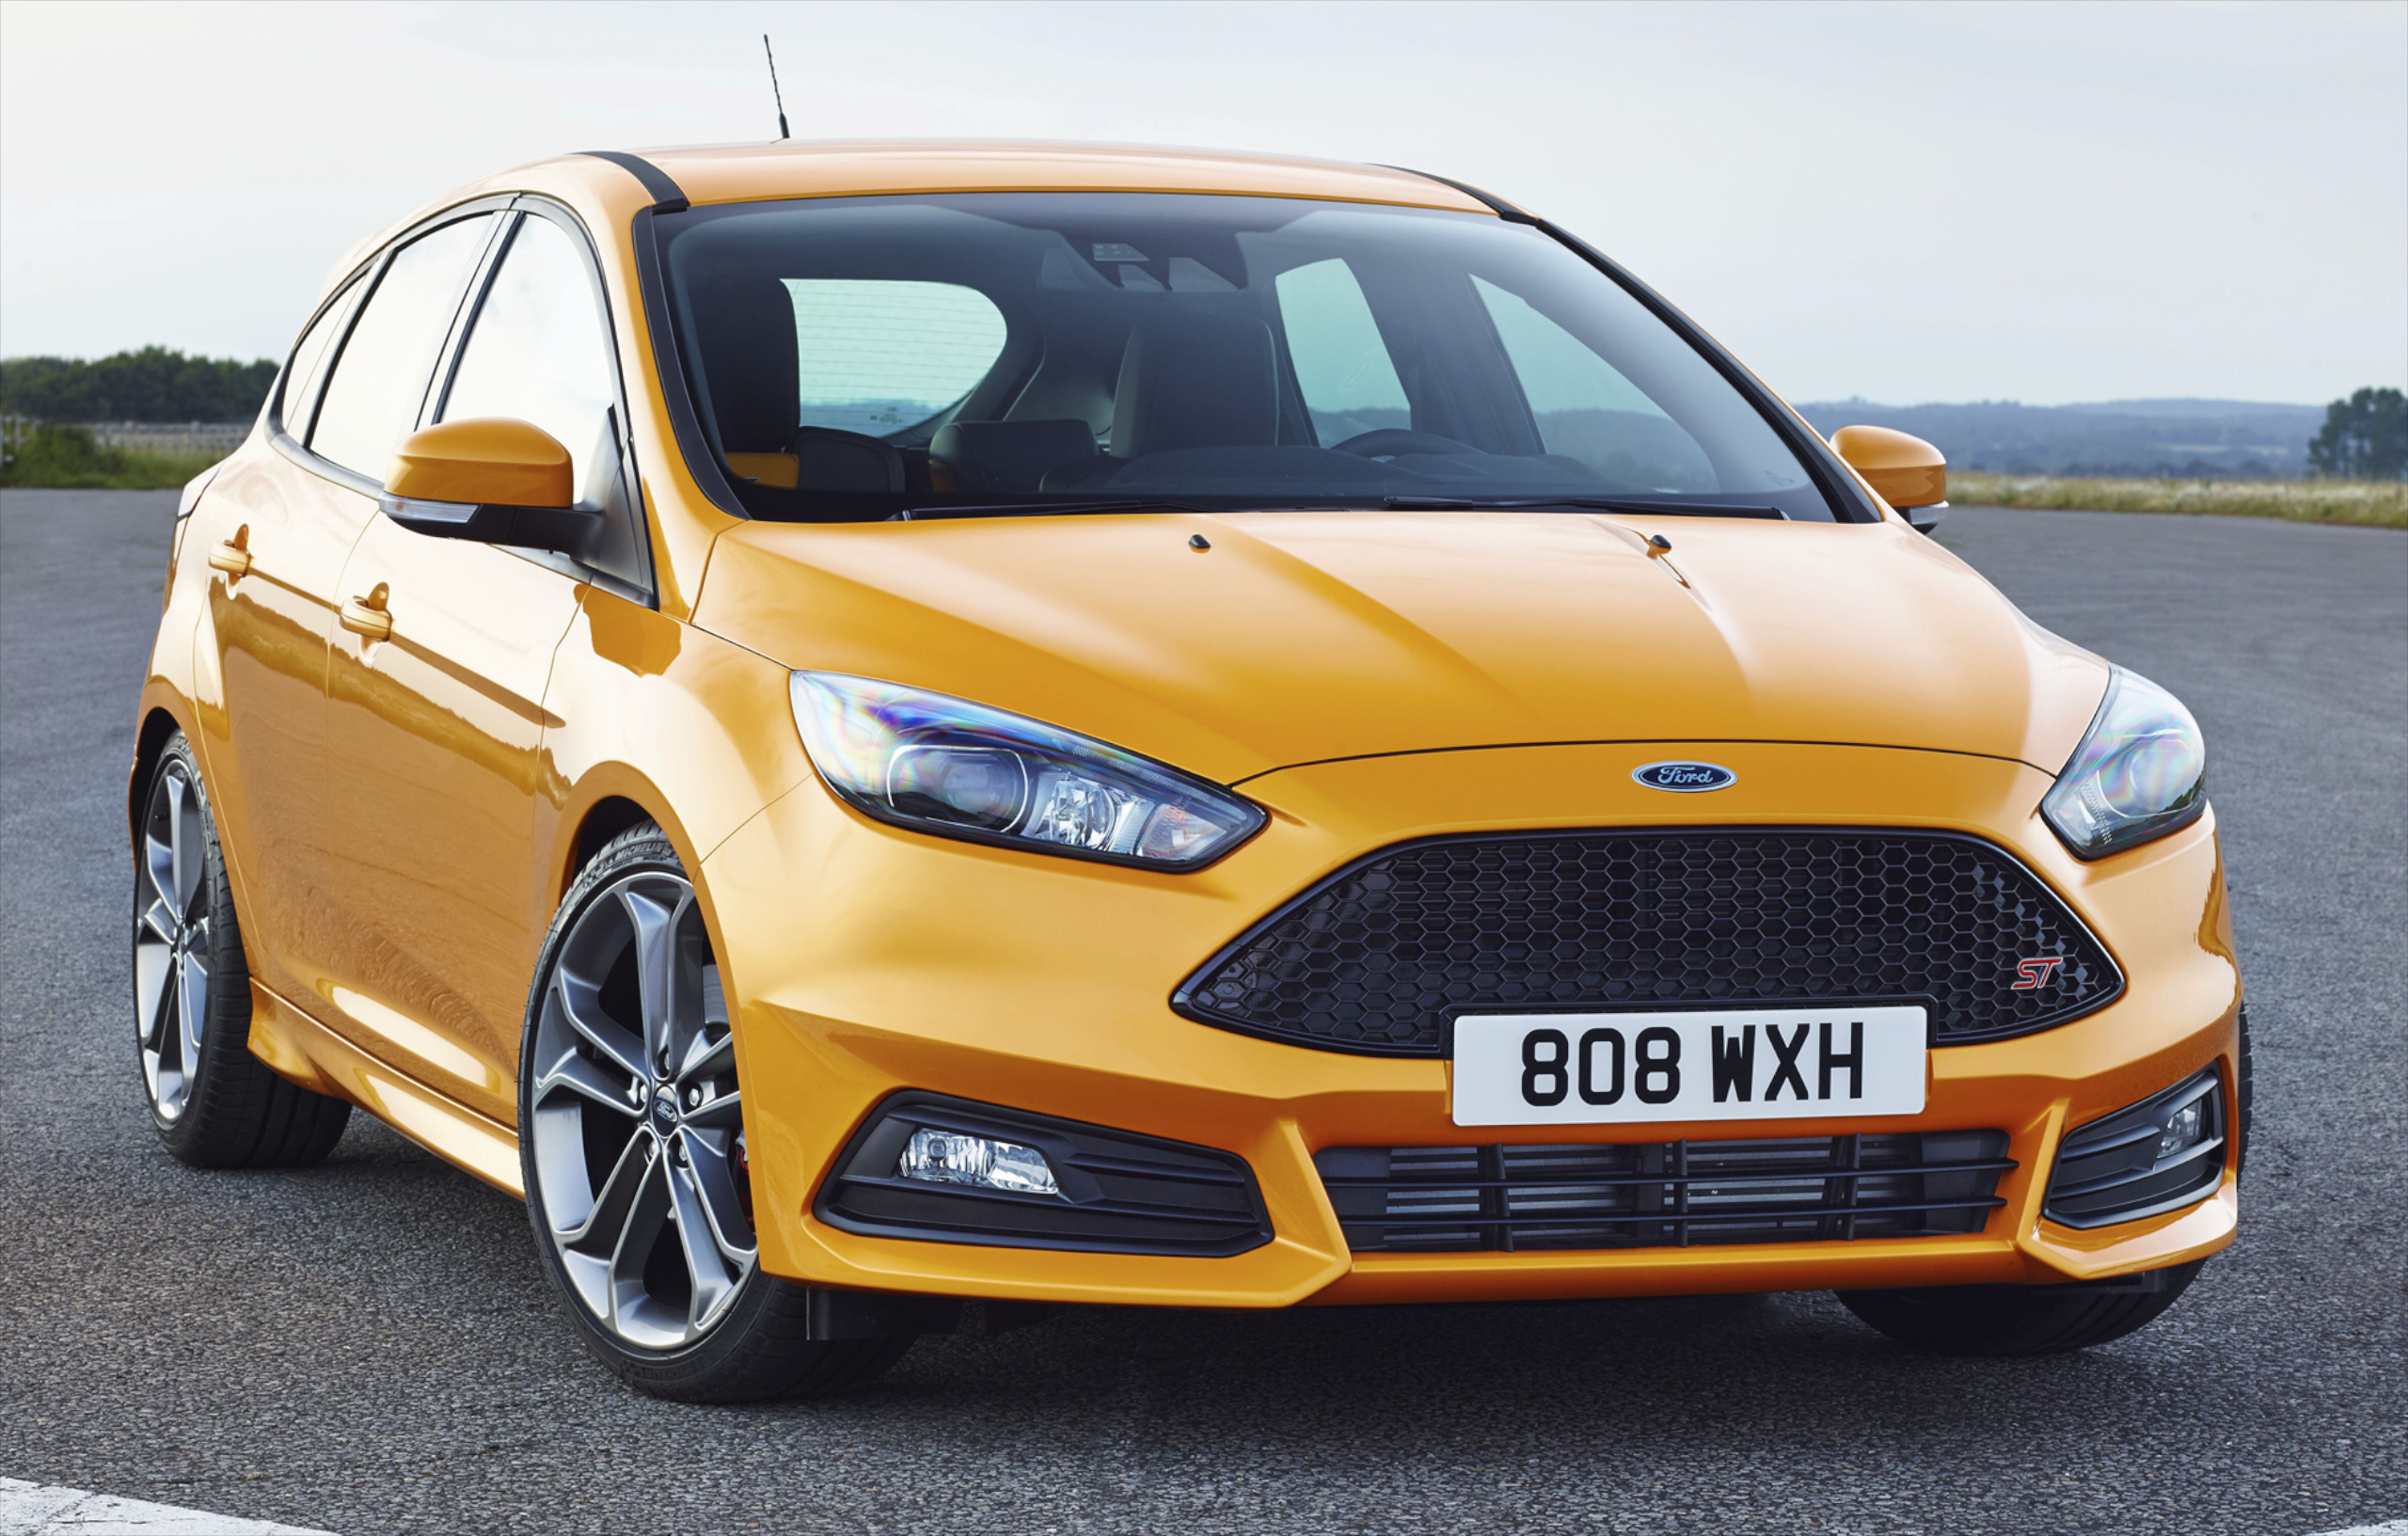 c346 ford focus st facelift now in petrol and diesel image 256031. Black Bedroom Furniture Sets. Home Design Ideas